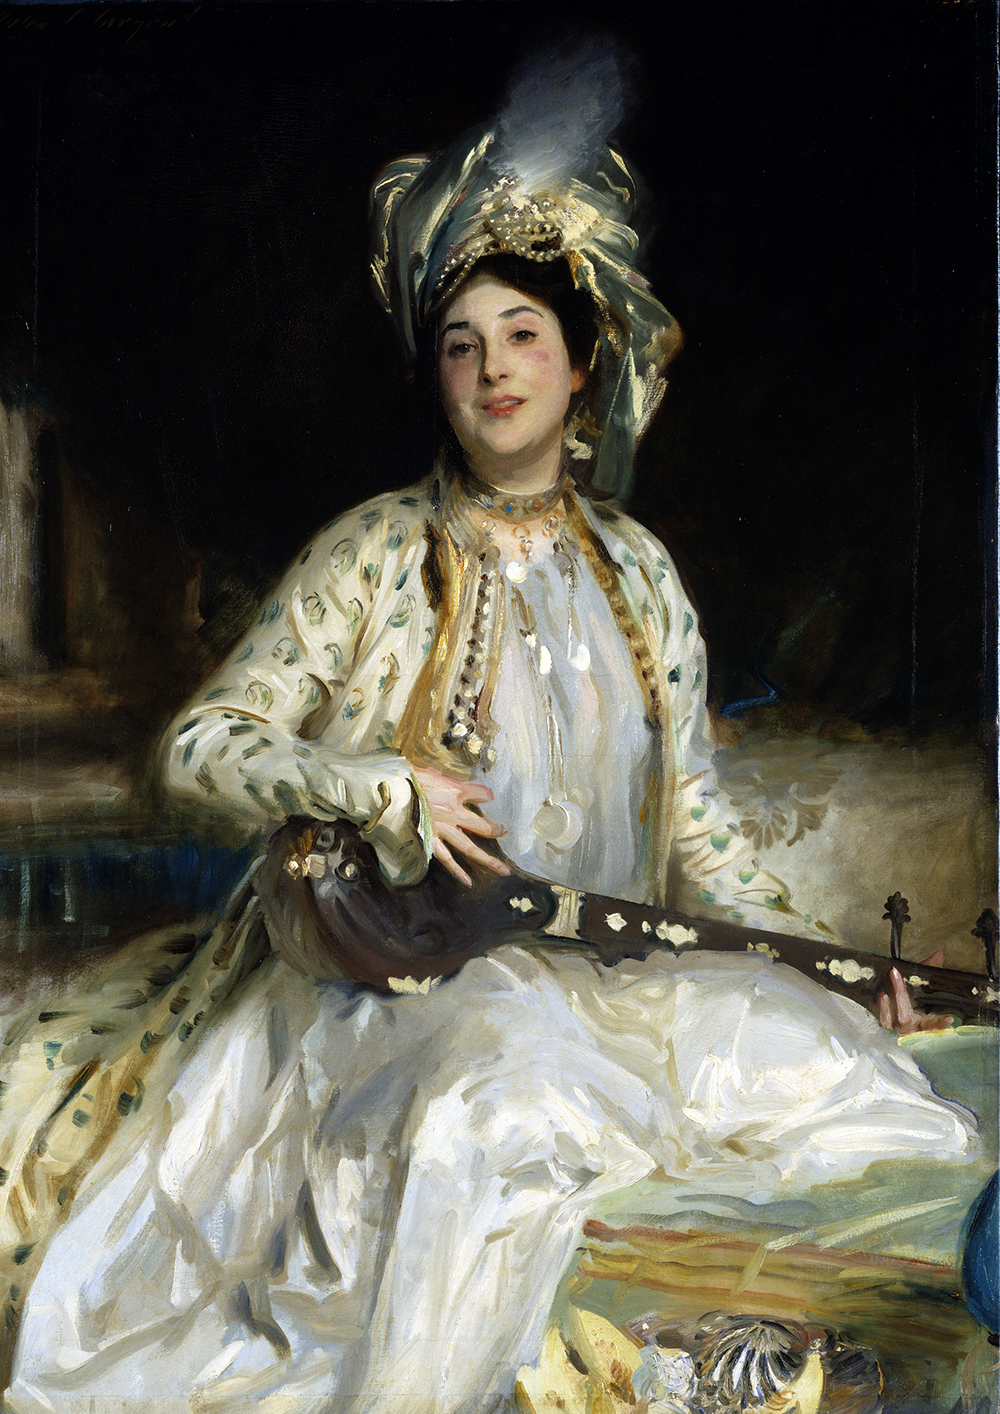 Almina, Daughter of Asher Wertheimer, by John Singer Sargent, 1908. Tate, London.